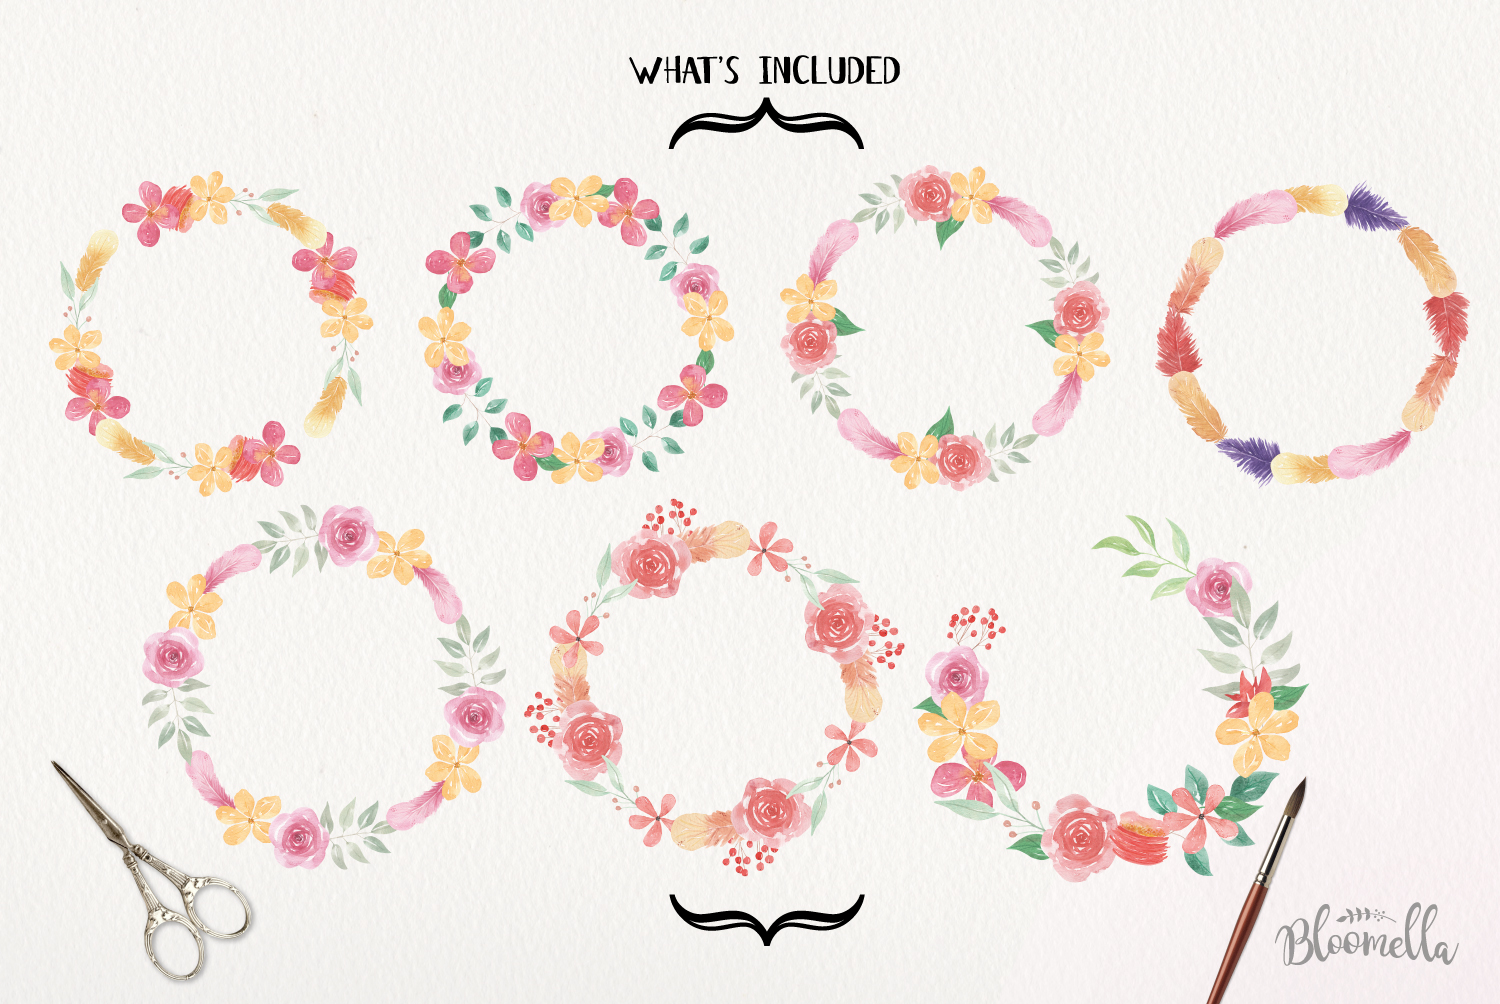 Floral 7 Wreath Watercolor Floral Garlands Flower Pink Berry example image 2